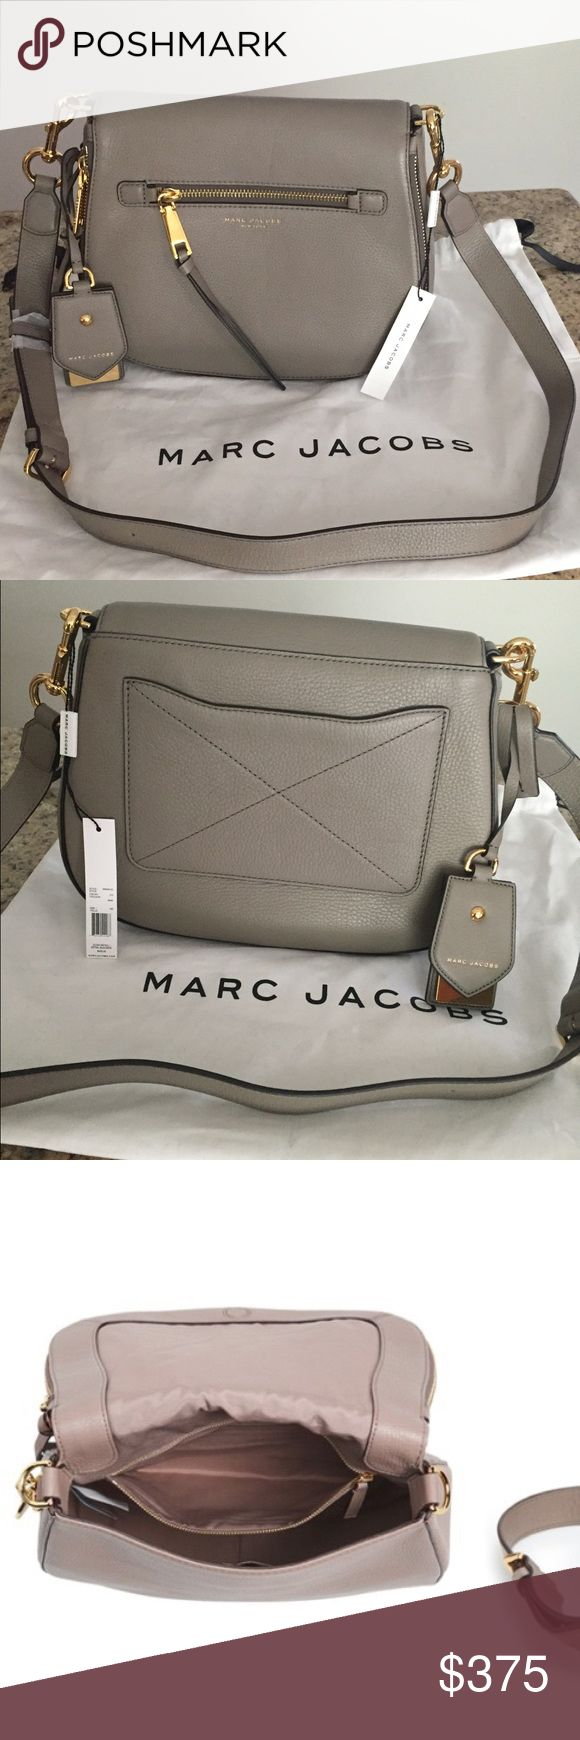 NWT Marc Jacobs Recruit saddle leather bag Color - mink. Retail $450 (still full price on Marc Jacobs website). New with tags. For more details please see last image. No tax (saves approx $40). Dust bag included. Marc Jacobs Bags Crossbody Bags